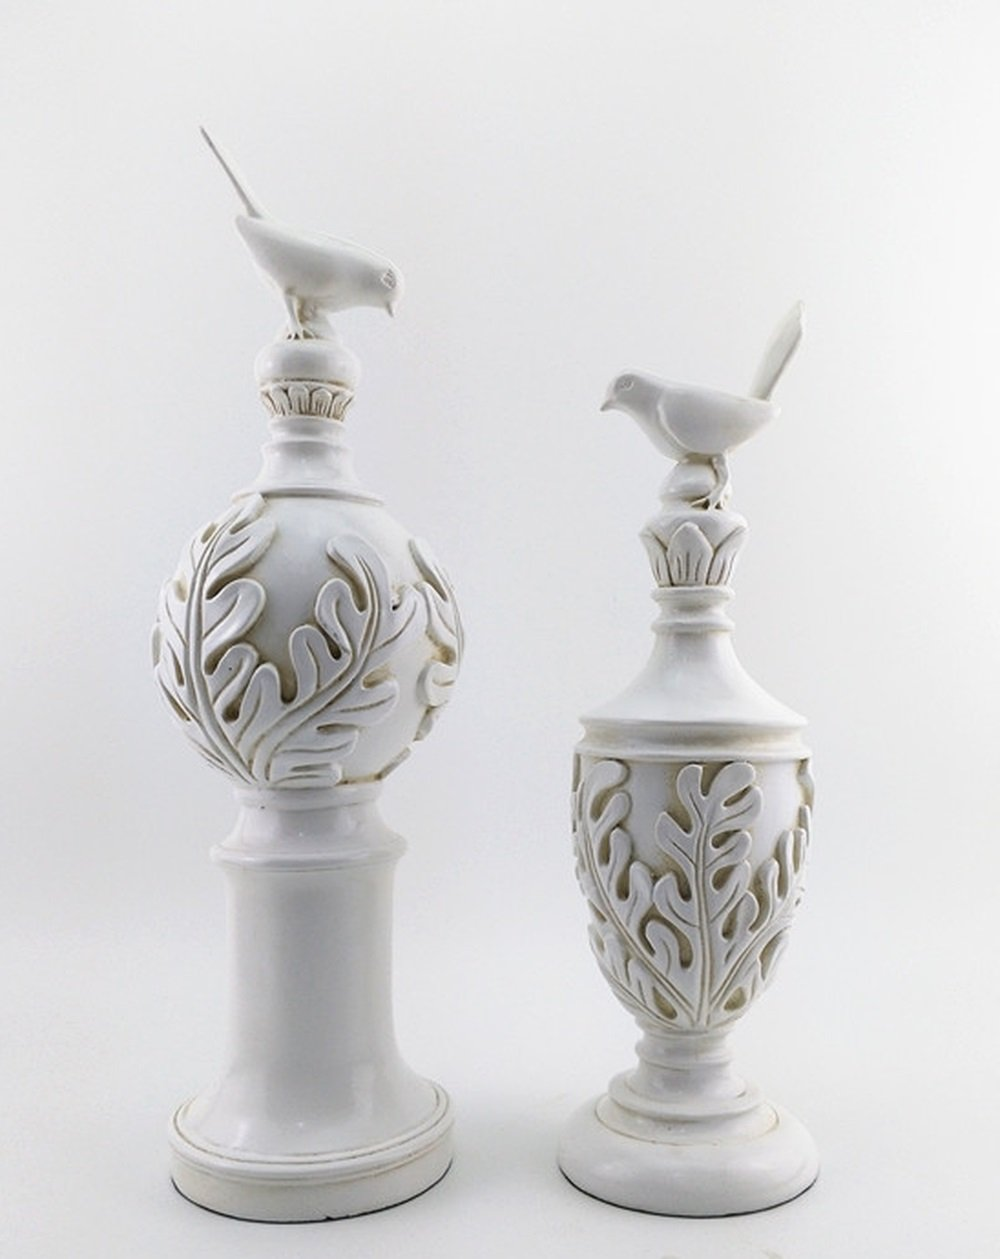 Bwlzsp 1 pair Soft design white nostalgic bird ornaments European-style American country French model room window club LU709146